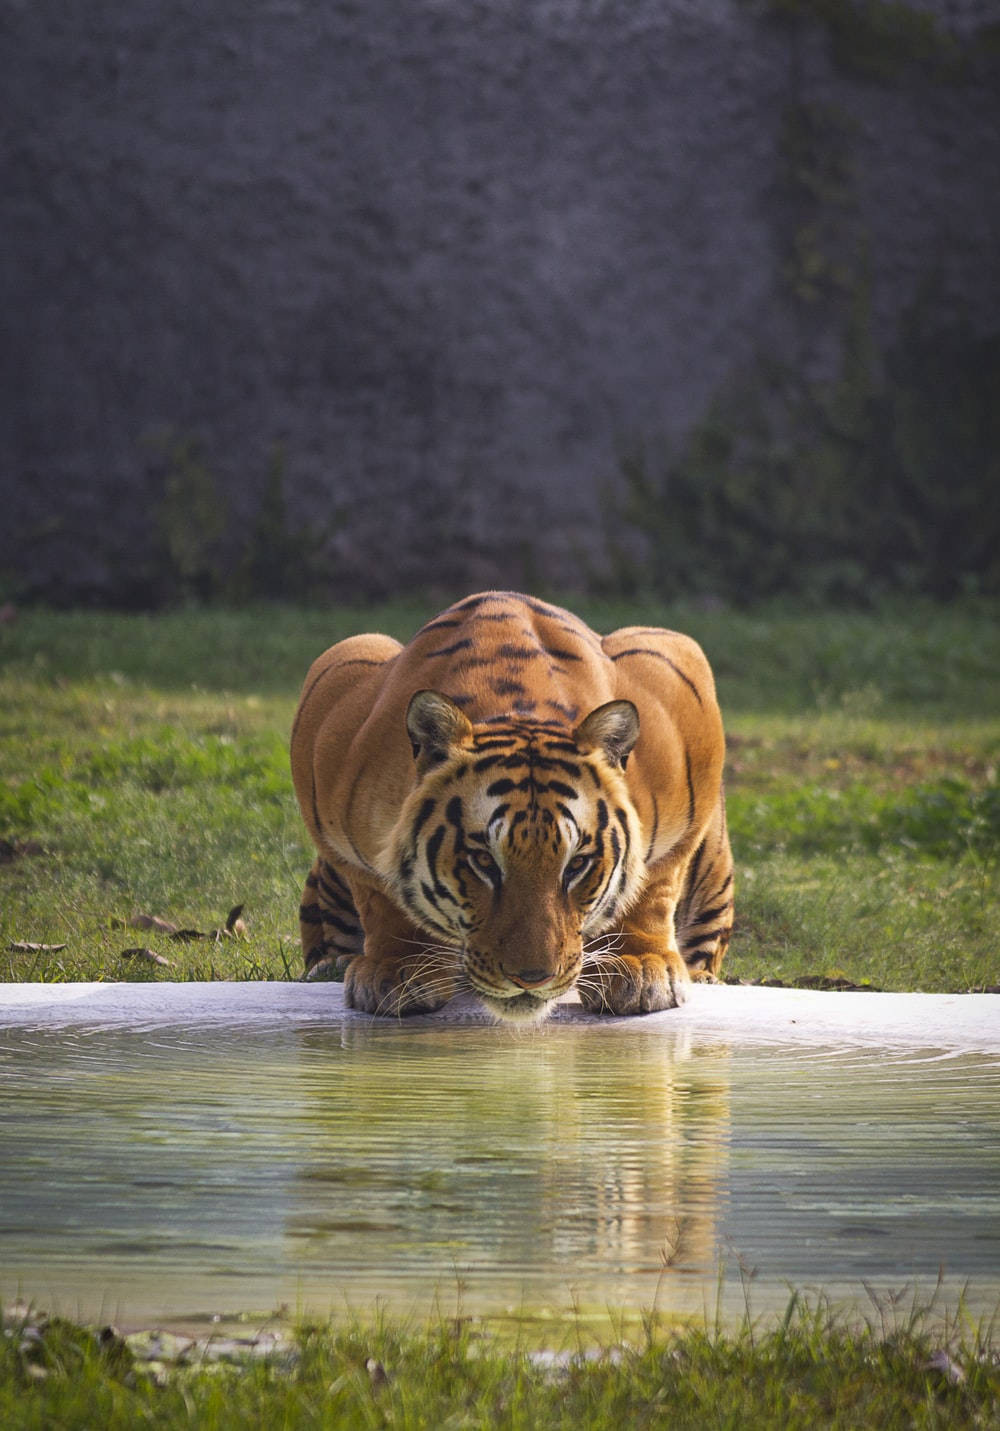 brown and black tiger near body of water